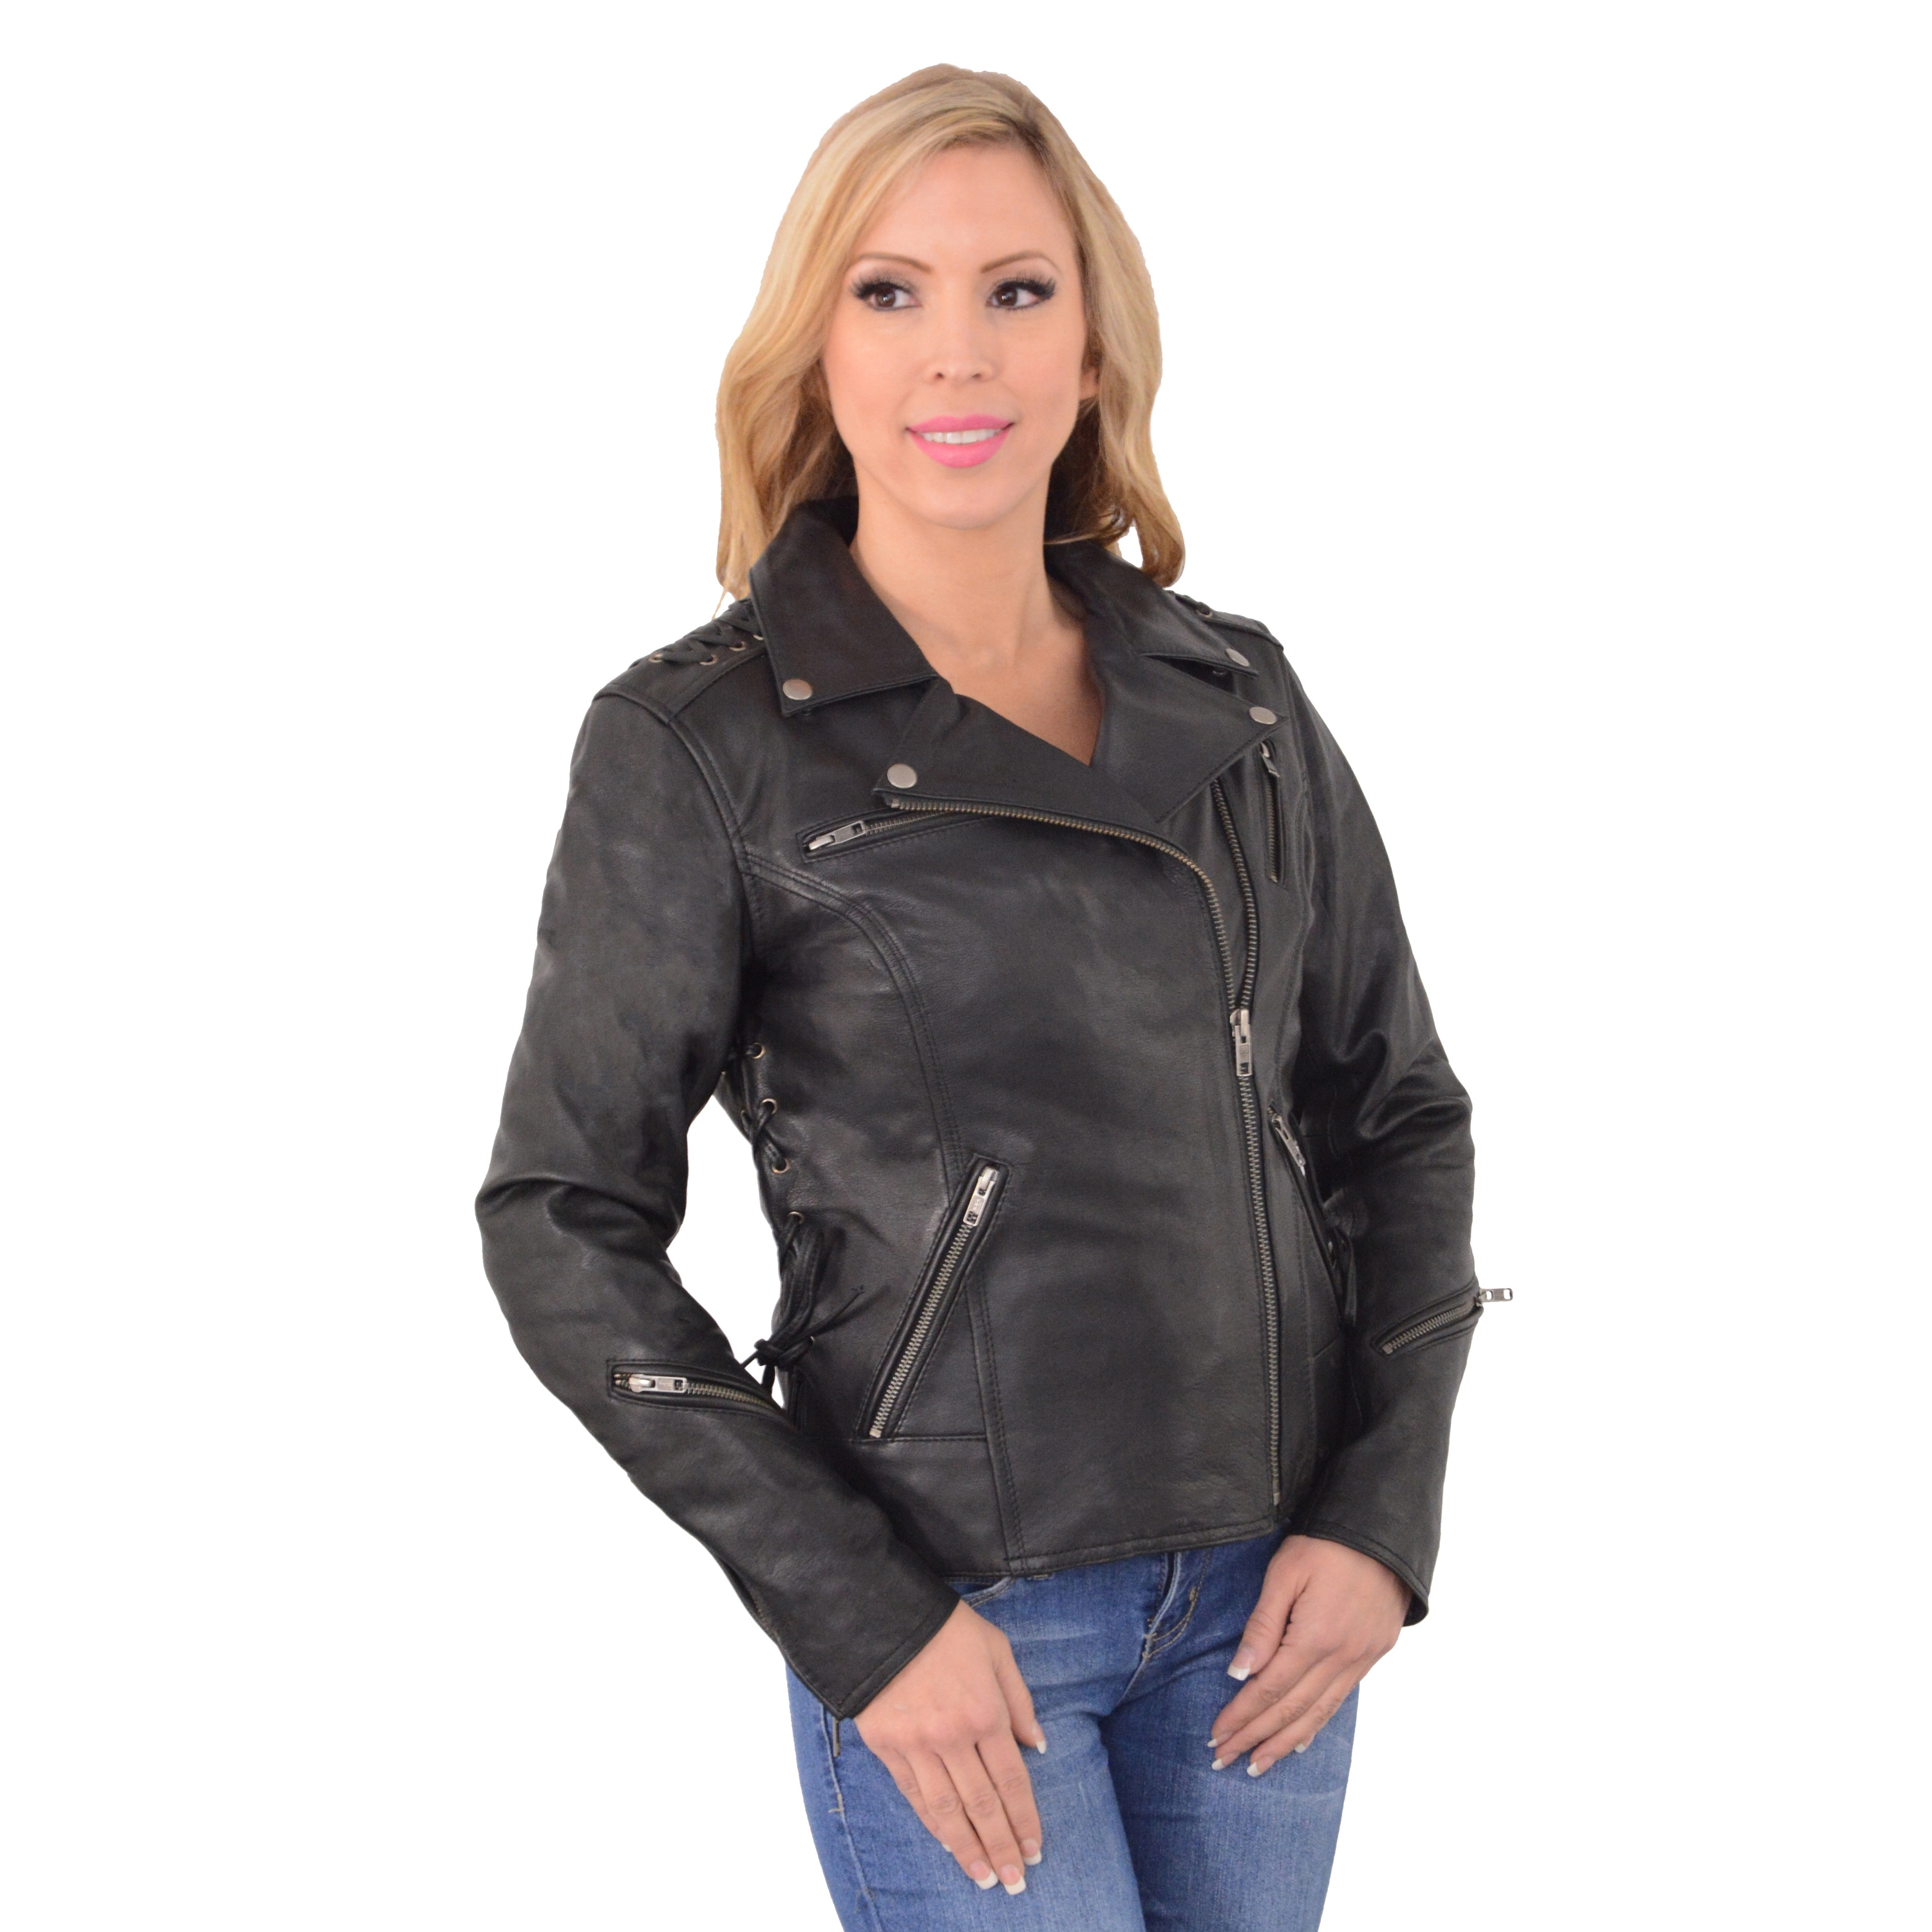 Women's Beaded Lightweight Lace-to-lace Motorcycle Jacket...